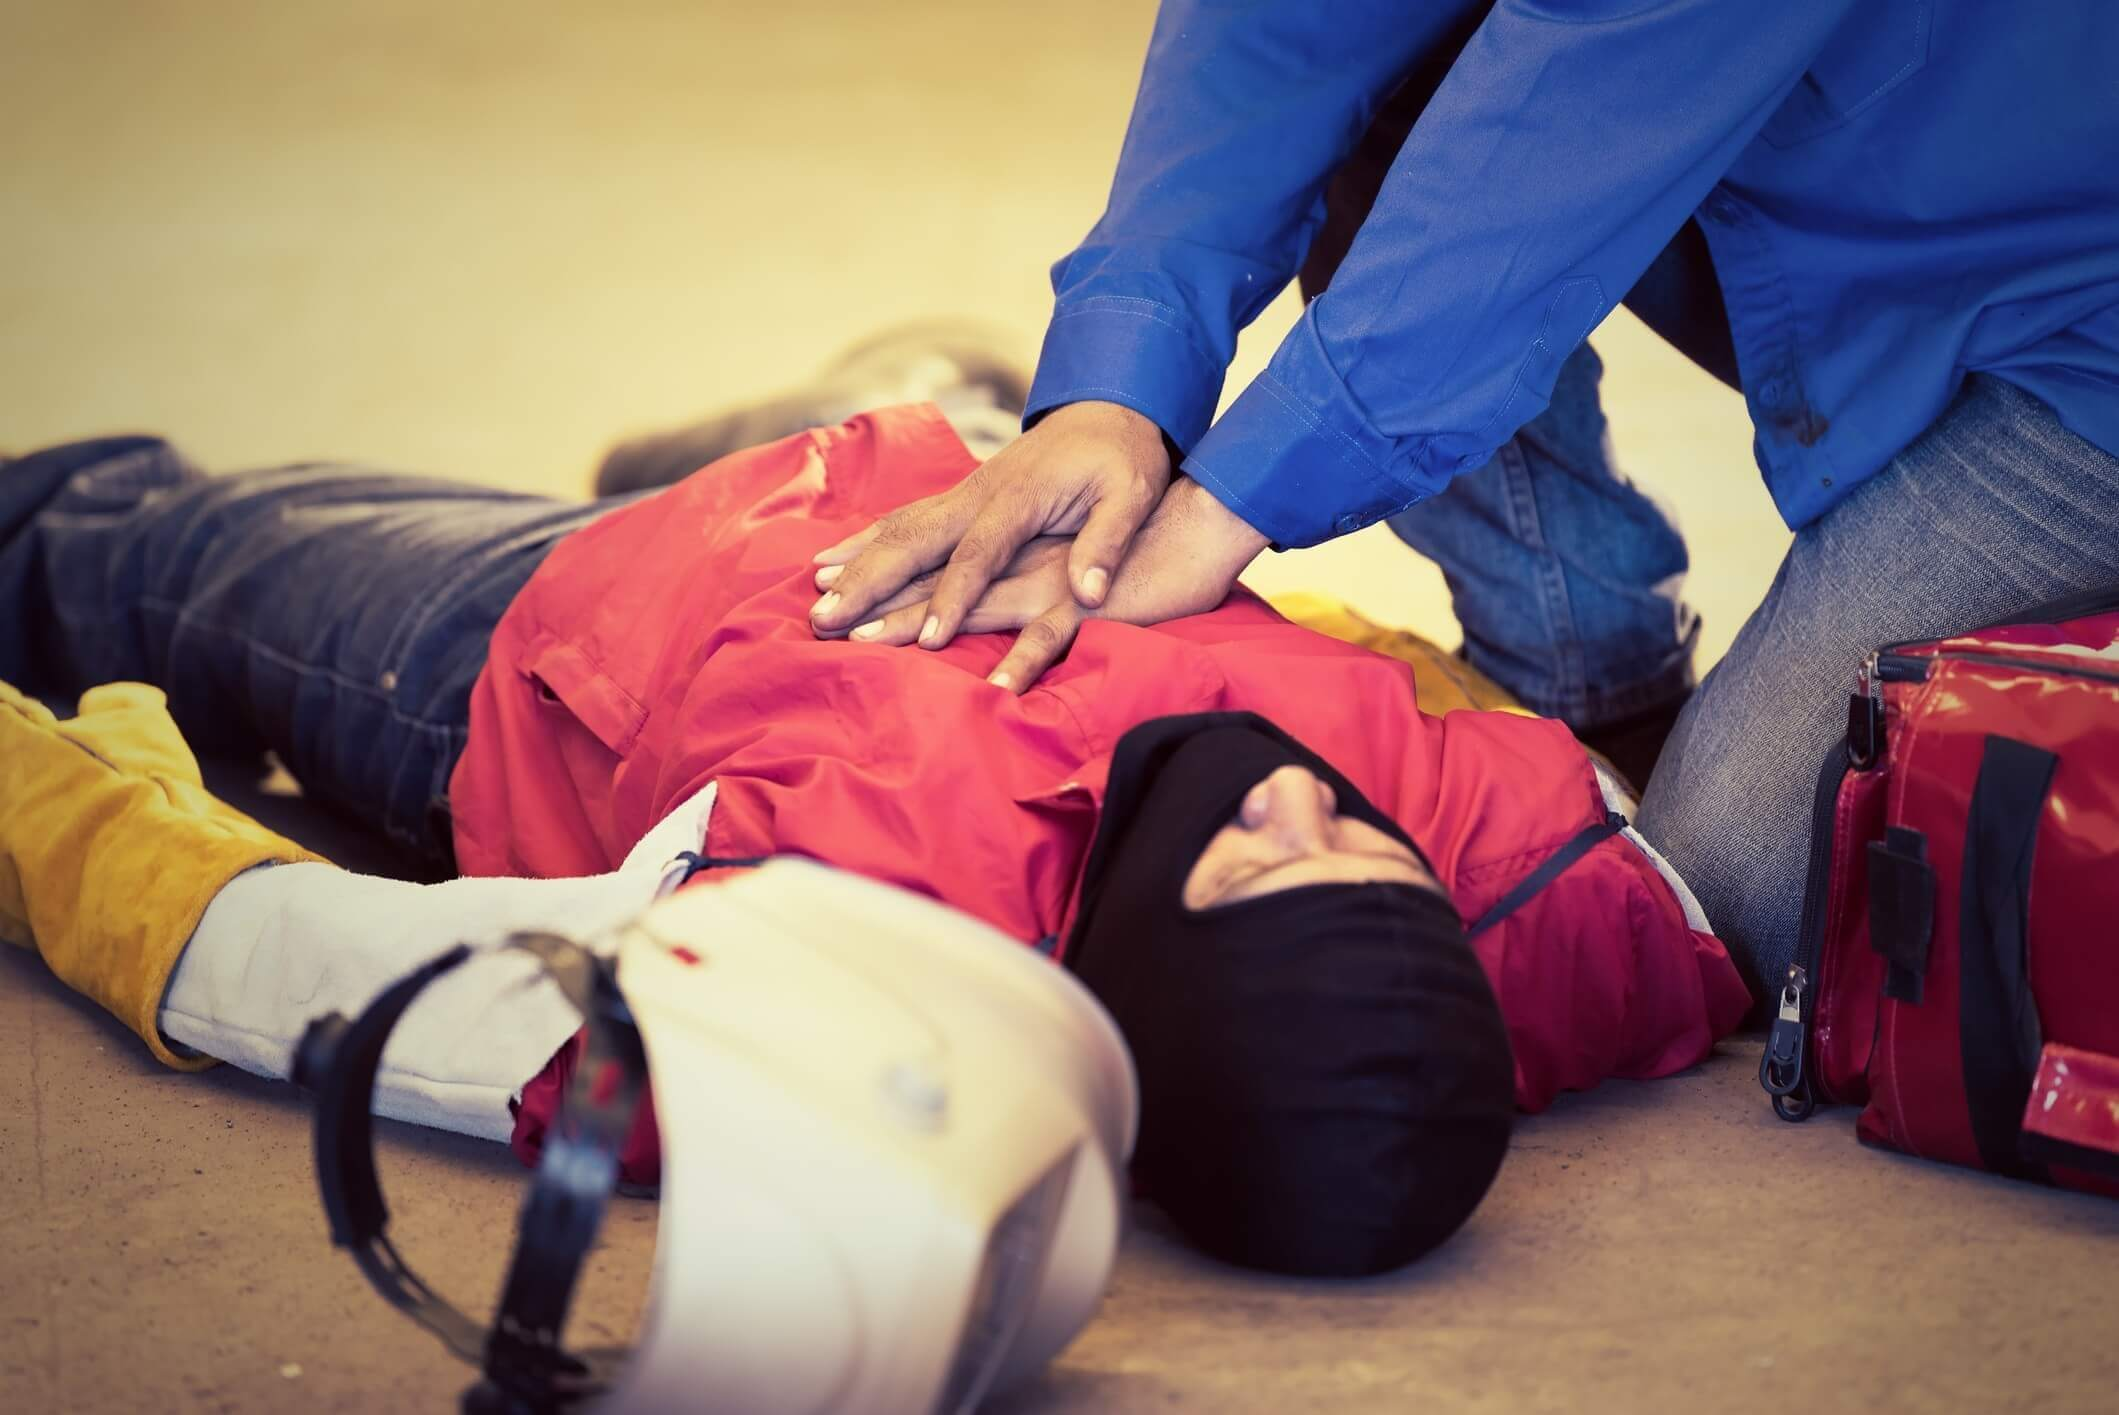 Do You Know How to Save a Life? Why You Need a First Aid Training Course